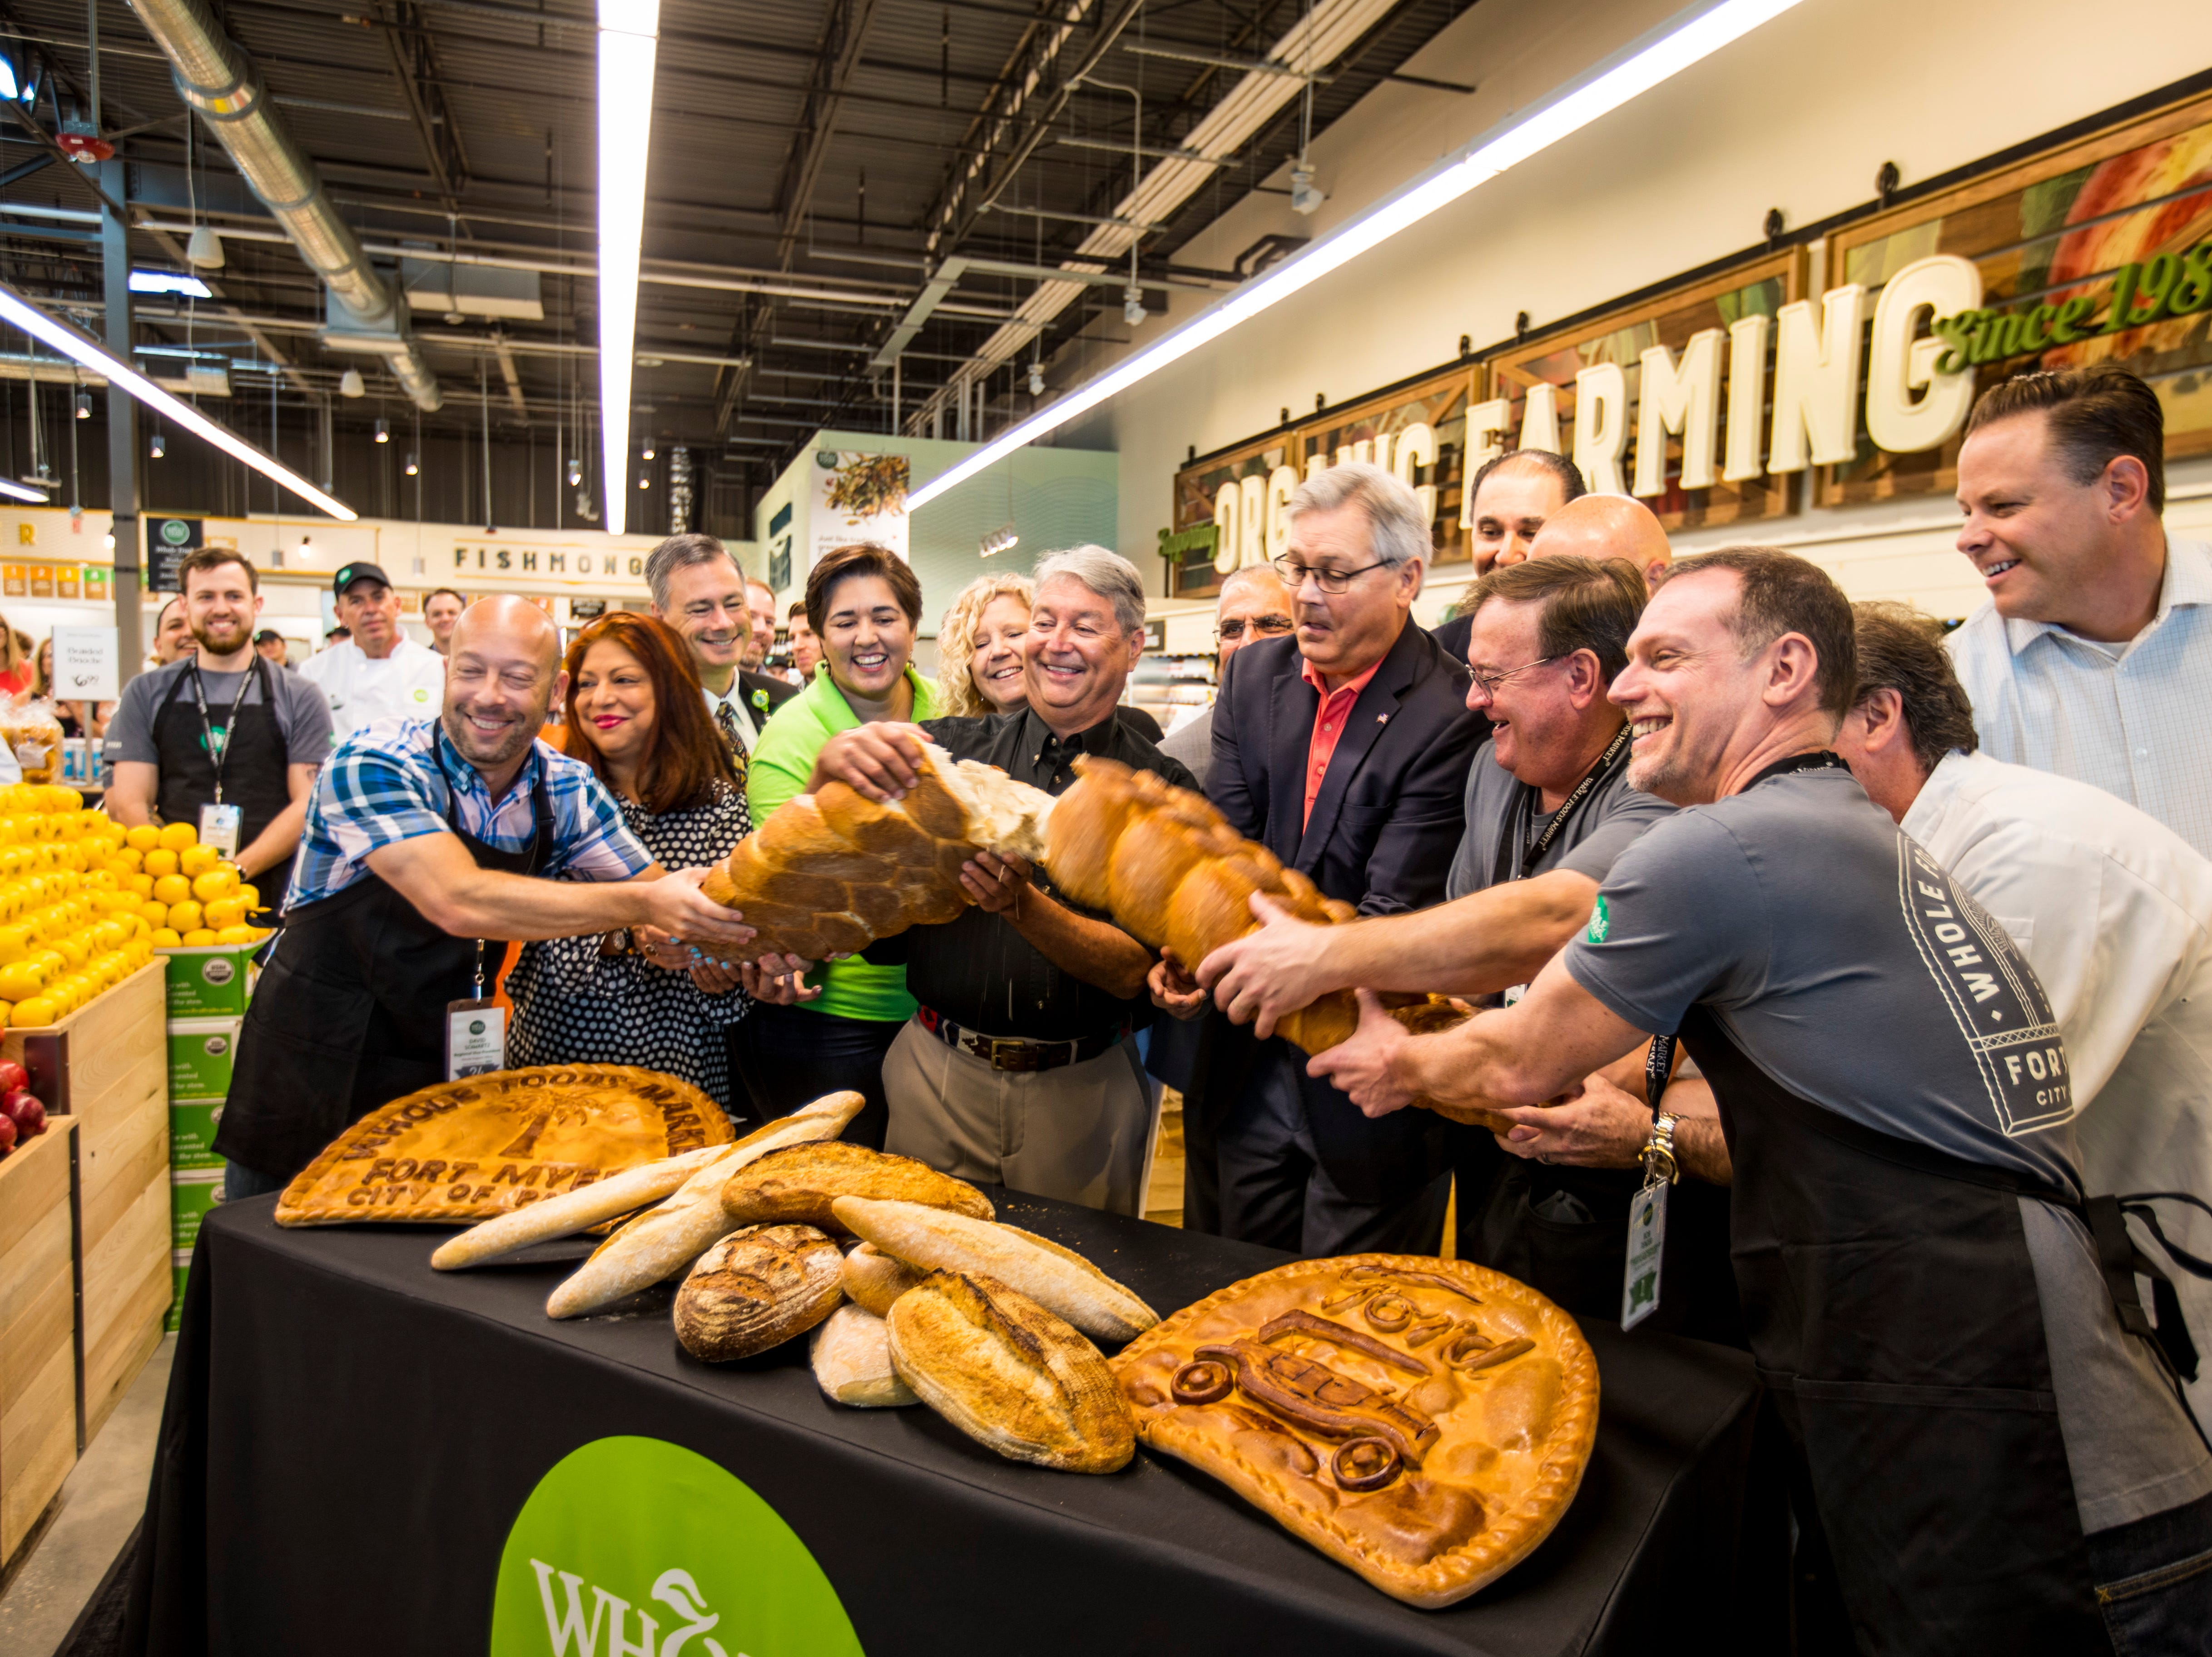 Instead of a ribbon cutting, Whole Foods breaks bread to officially open the store to the community. Whole Foods Market in South Fort Myers on the corner of Daniels and Six Mile Cypress opened on Wednesday morning to a crowd that wrapped around the building for hours.